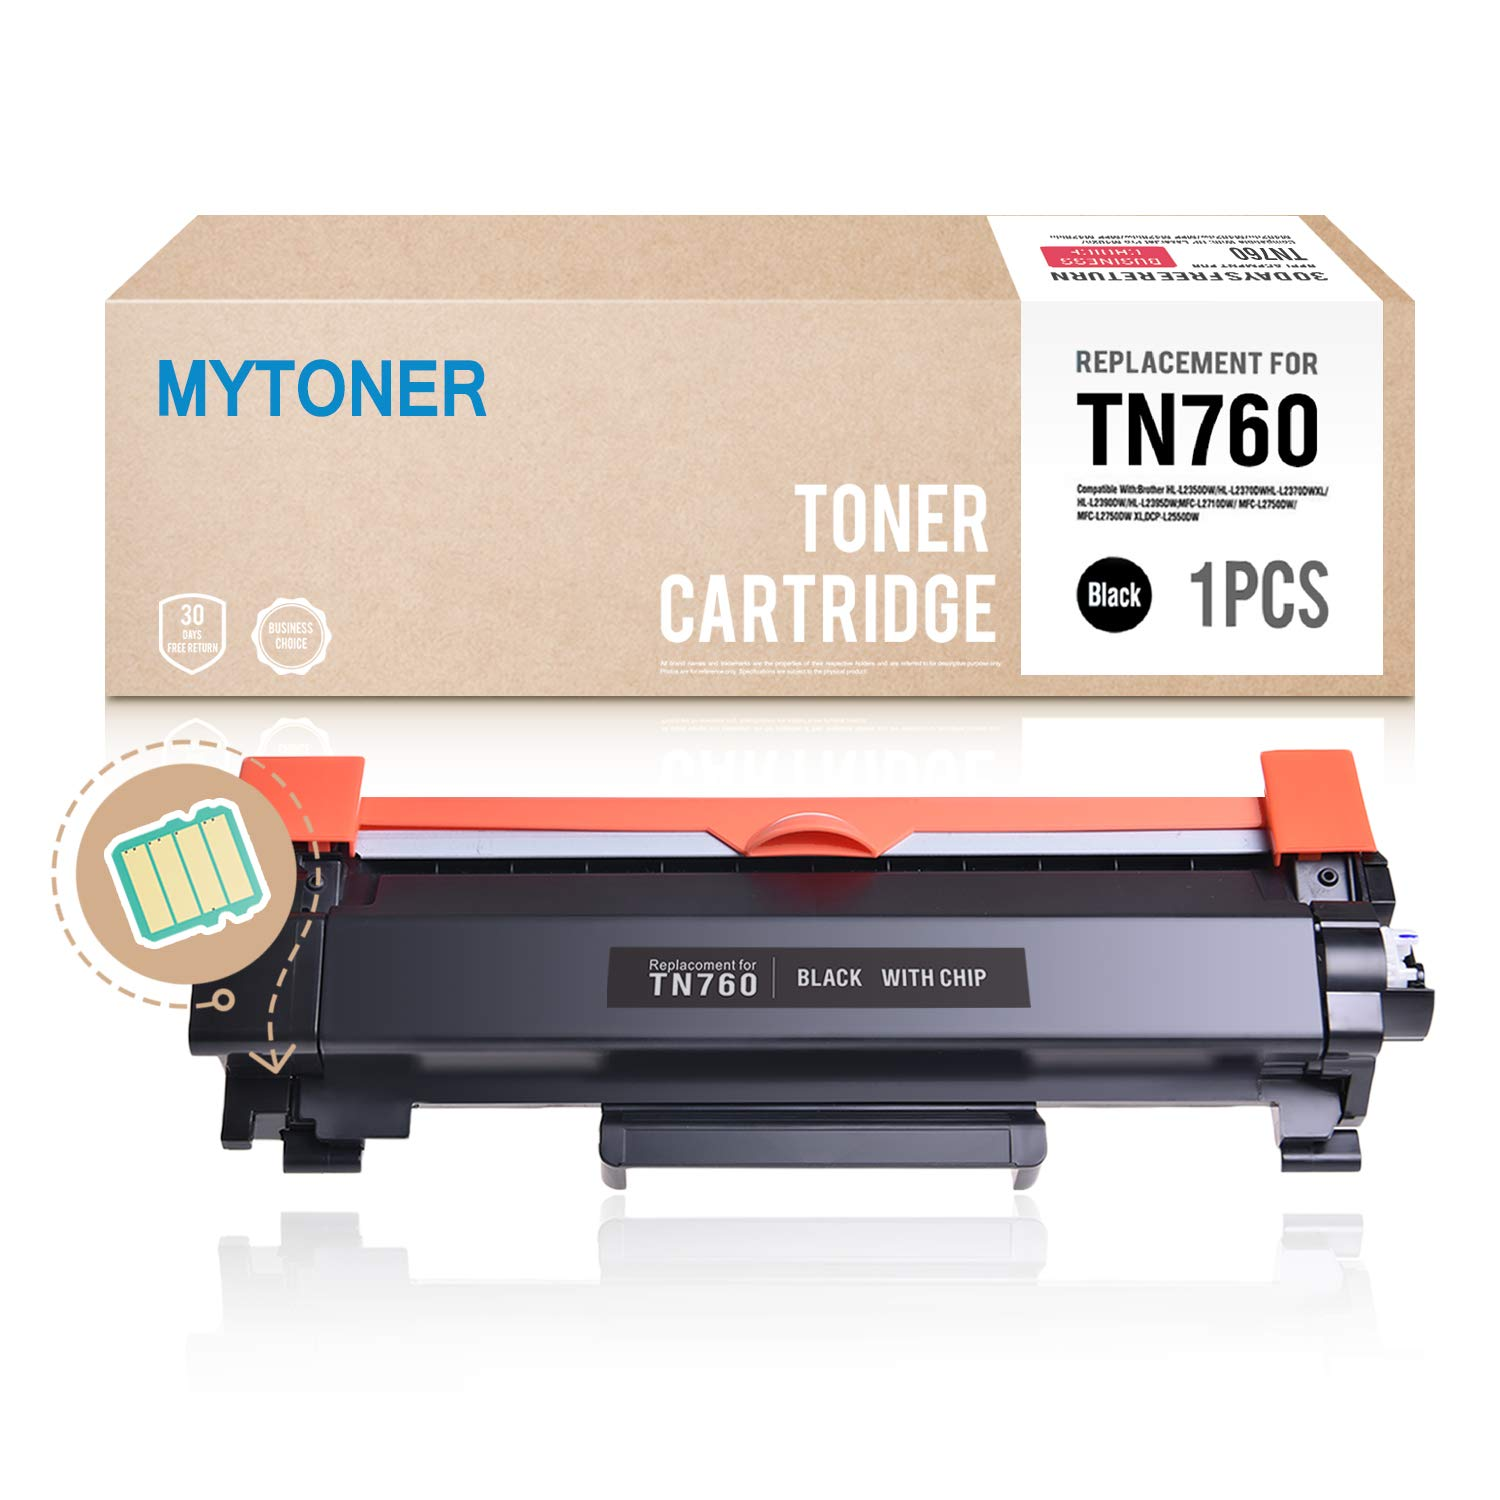 MYTONER (with CHIP) Compatible Brother TN760 TN730 TN-760 Toner Cartridge High Yield for Brother HL-L2350DW HL-L2390DW HL-L2395DW HL-L2370DW DCP-L2550DW MFC-L2710DW MFC-L2730DW MFC-L2750DW